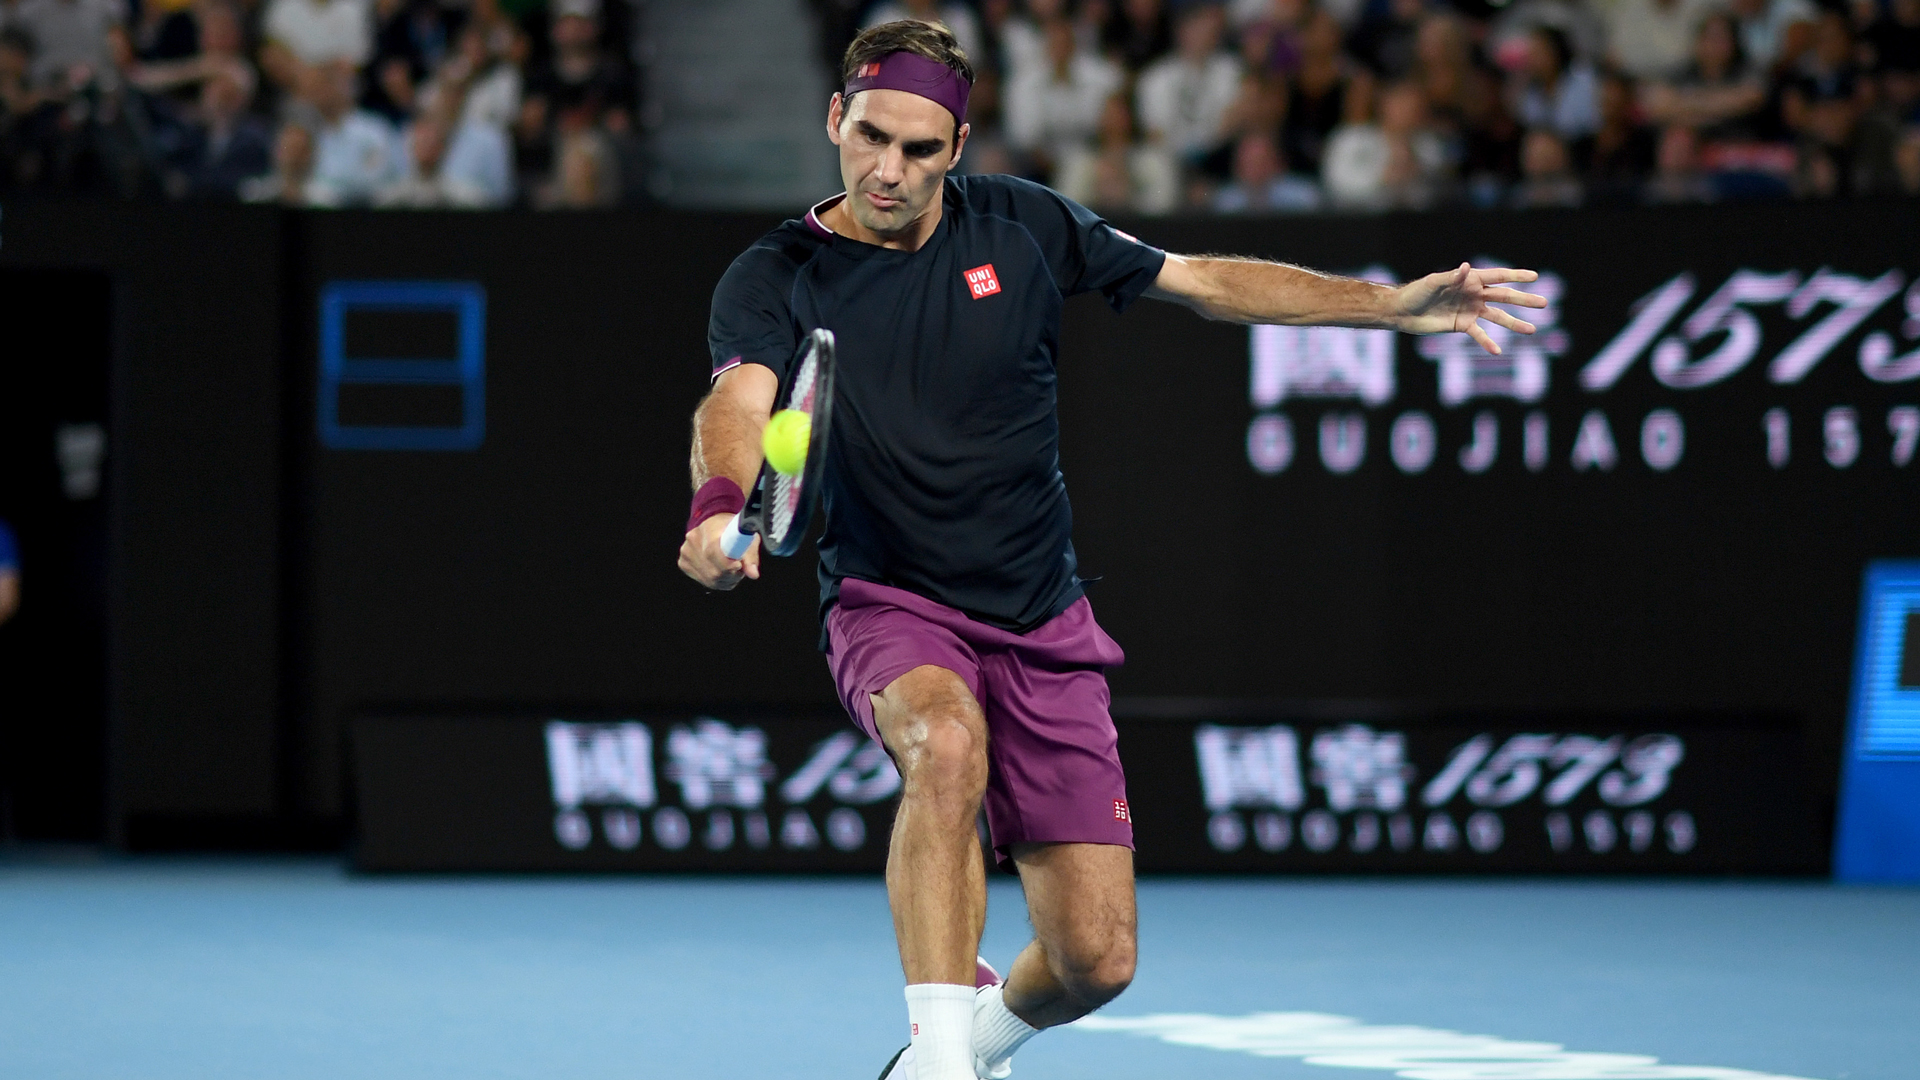 Australian Open 2020: Roger Federer's best wins in Melbourne after Swiss great reaches 100 victories